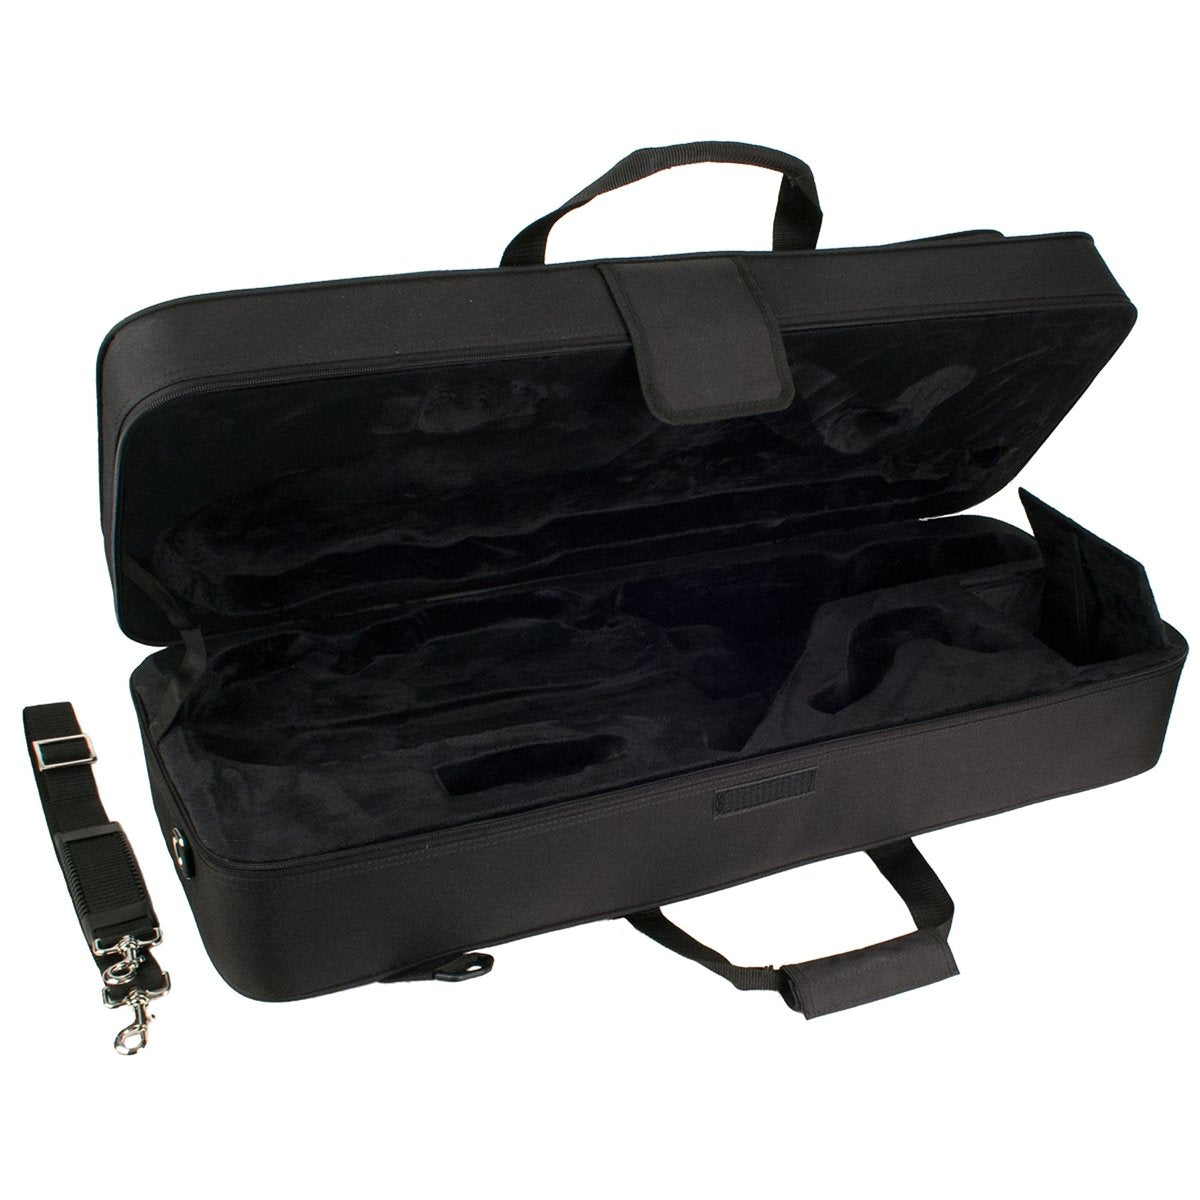 Protec - Tenor Saxophone PRO PAC Case (Rectangular)-Accessories-Protec-Music Elements